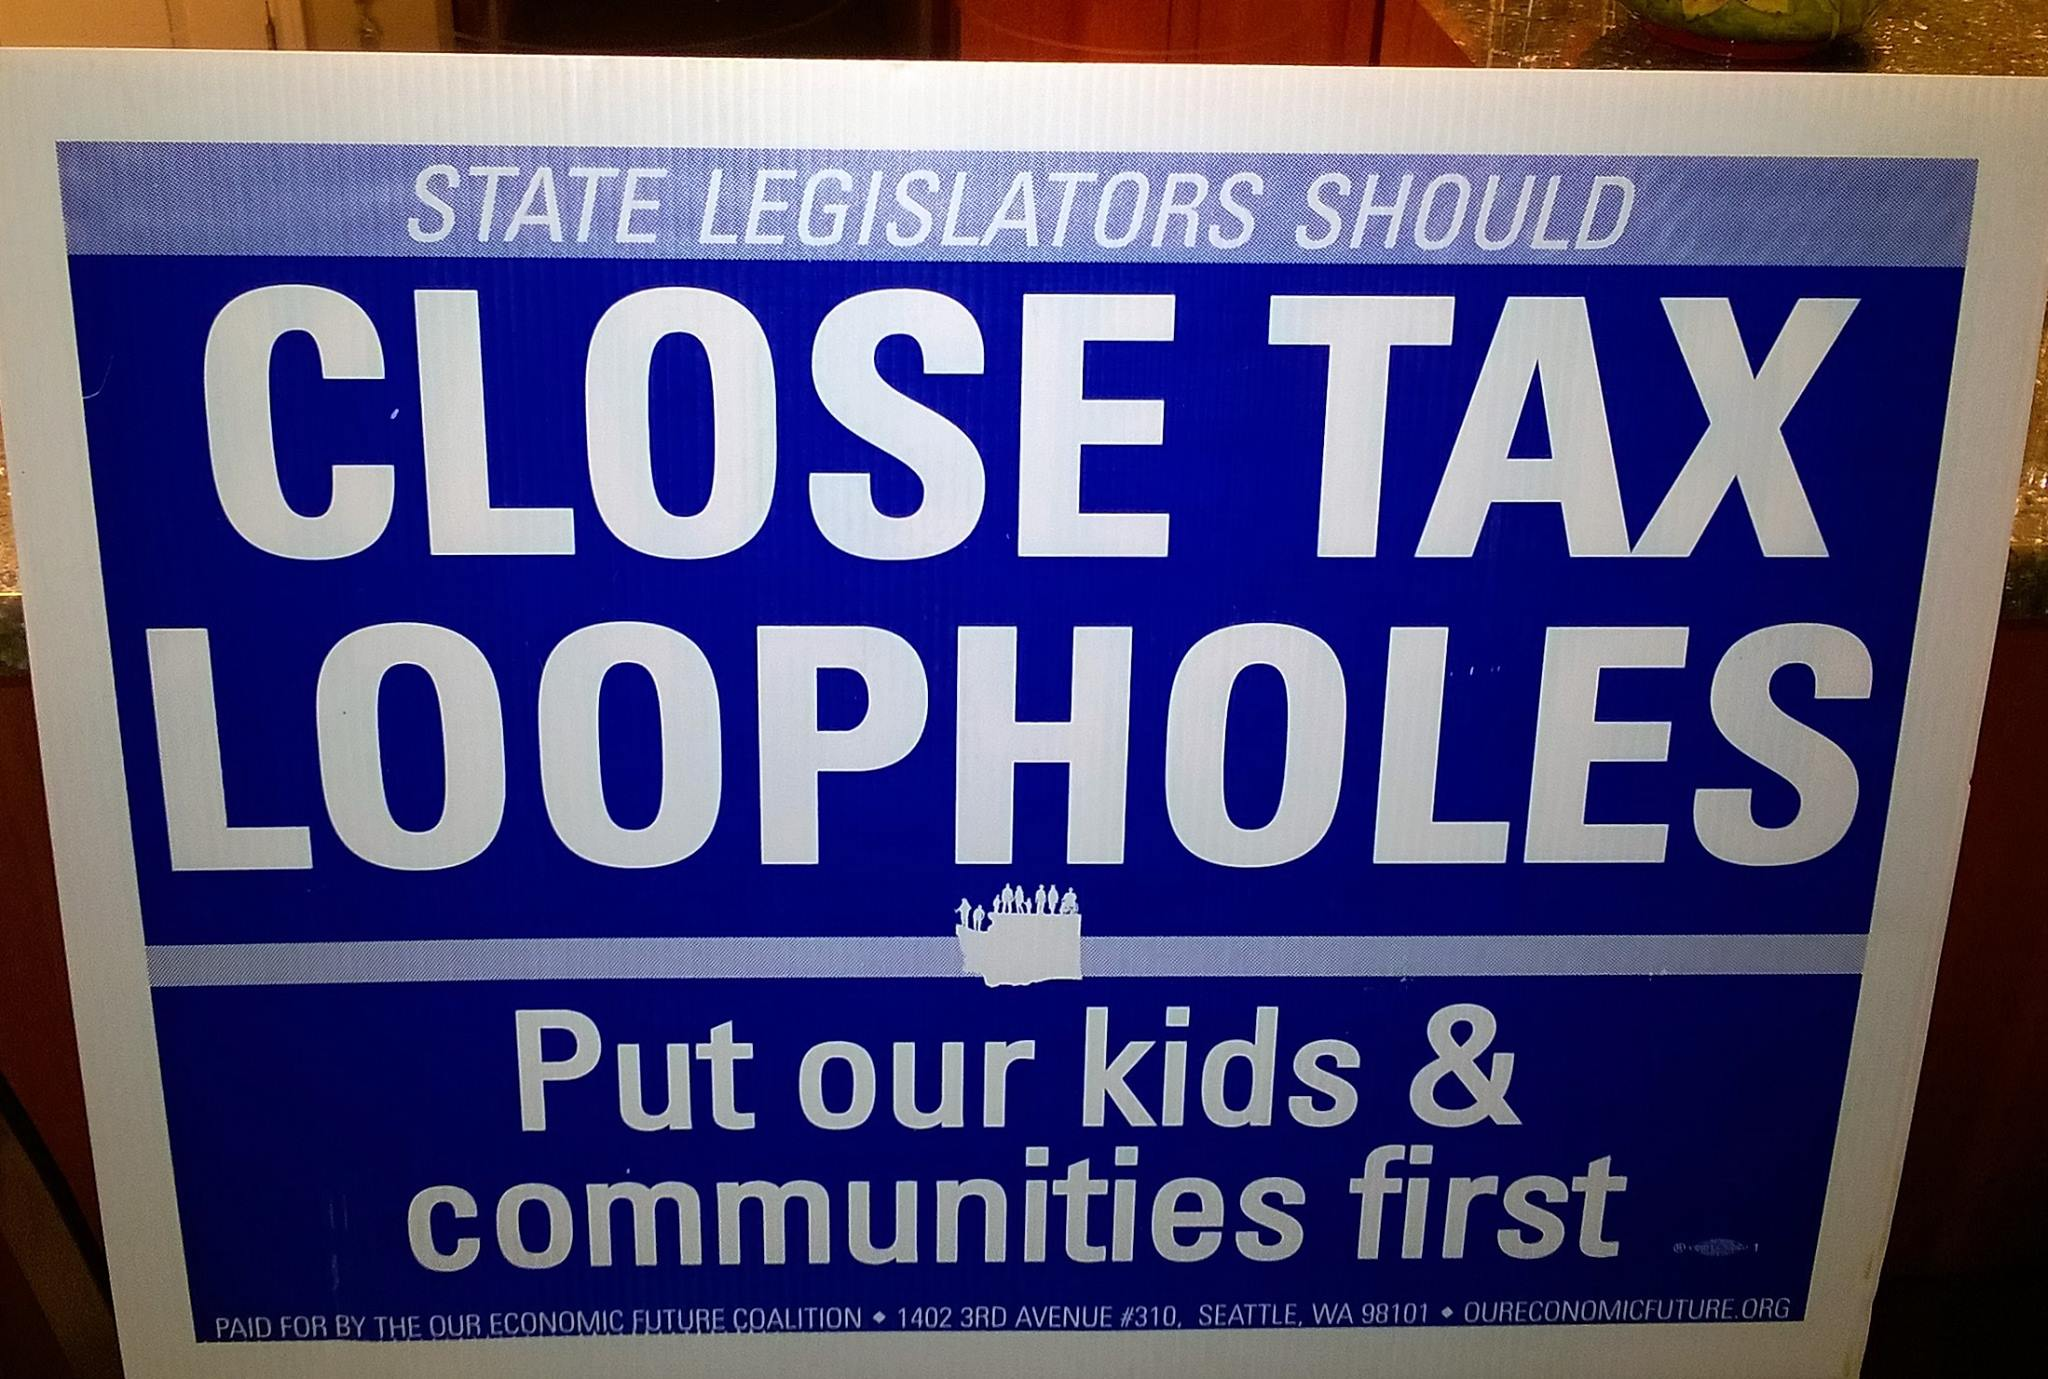 close tax loopholes yardsign